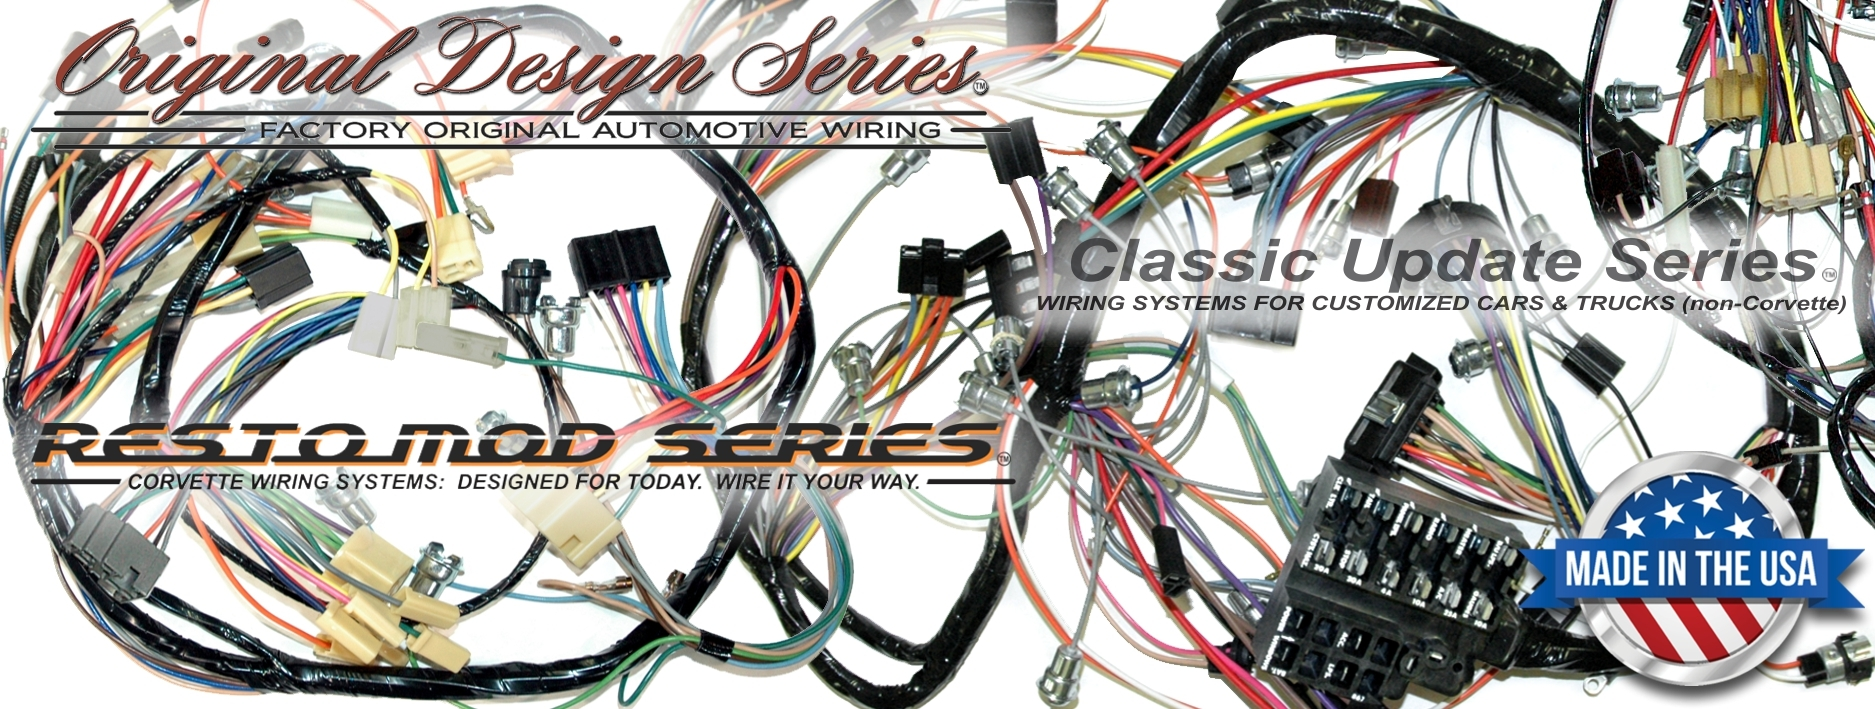 Exact Oem Reproduction Wiring Harnesses And Restomod Systems 1998 International 7 3 Harness Diagram Individual Complete